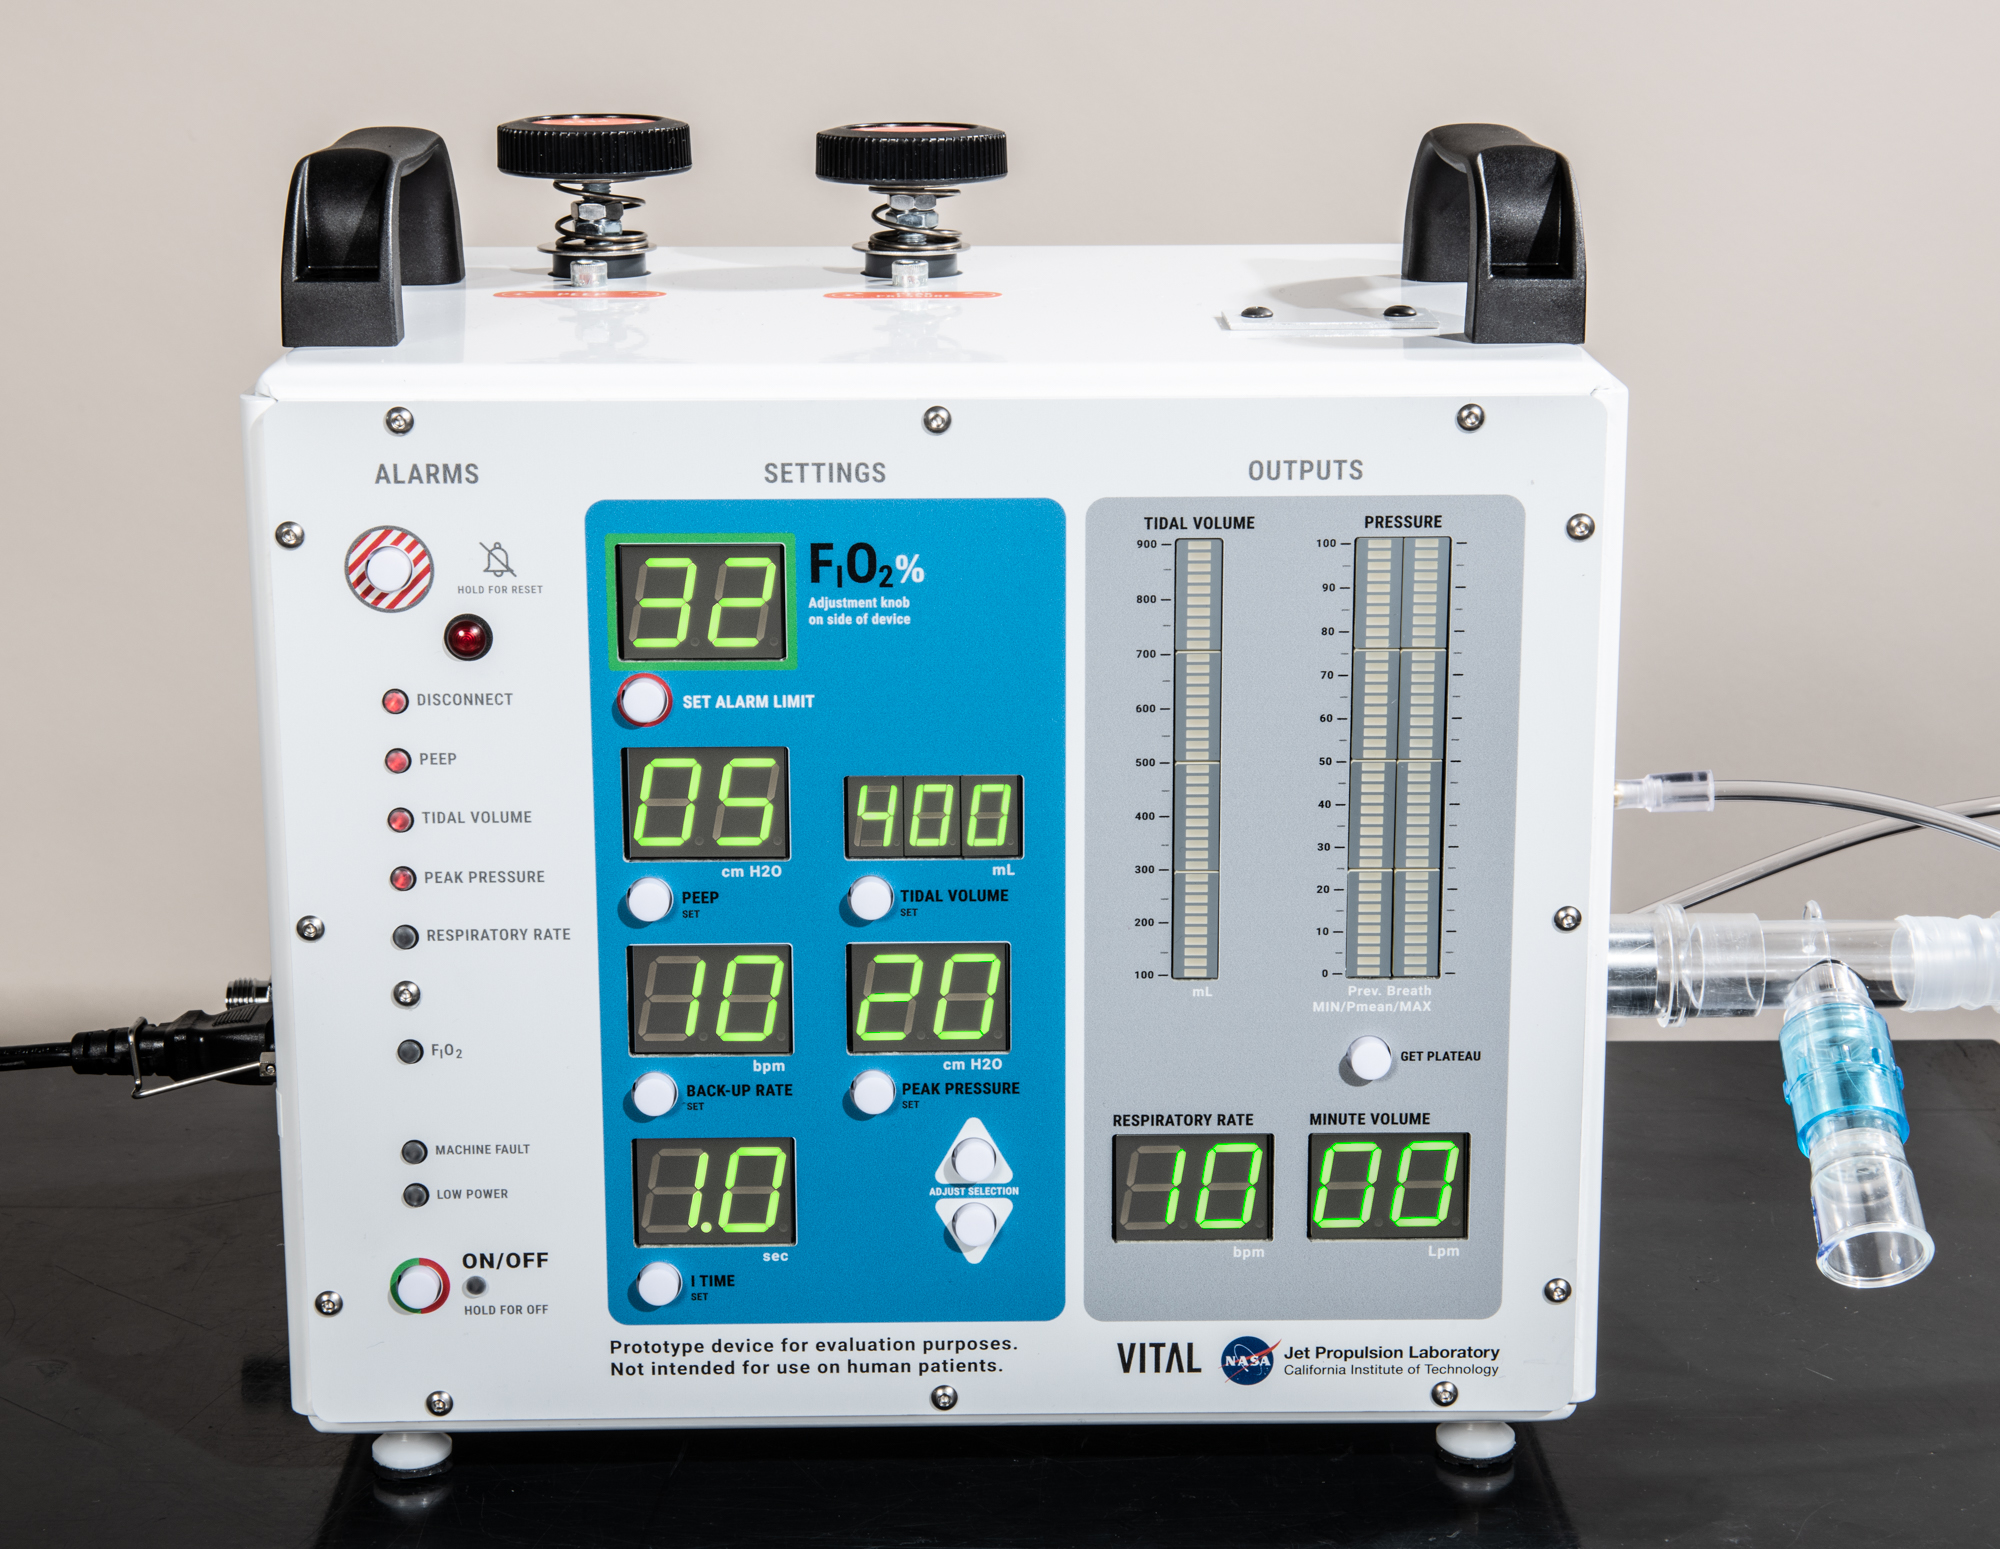 VITAL is a new high-pressure ventilator developed by NASA and tailored to treat coronavirus patients.